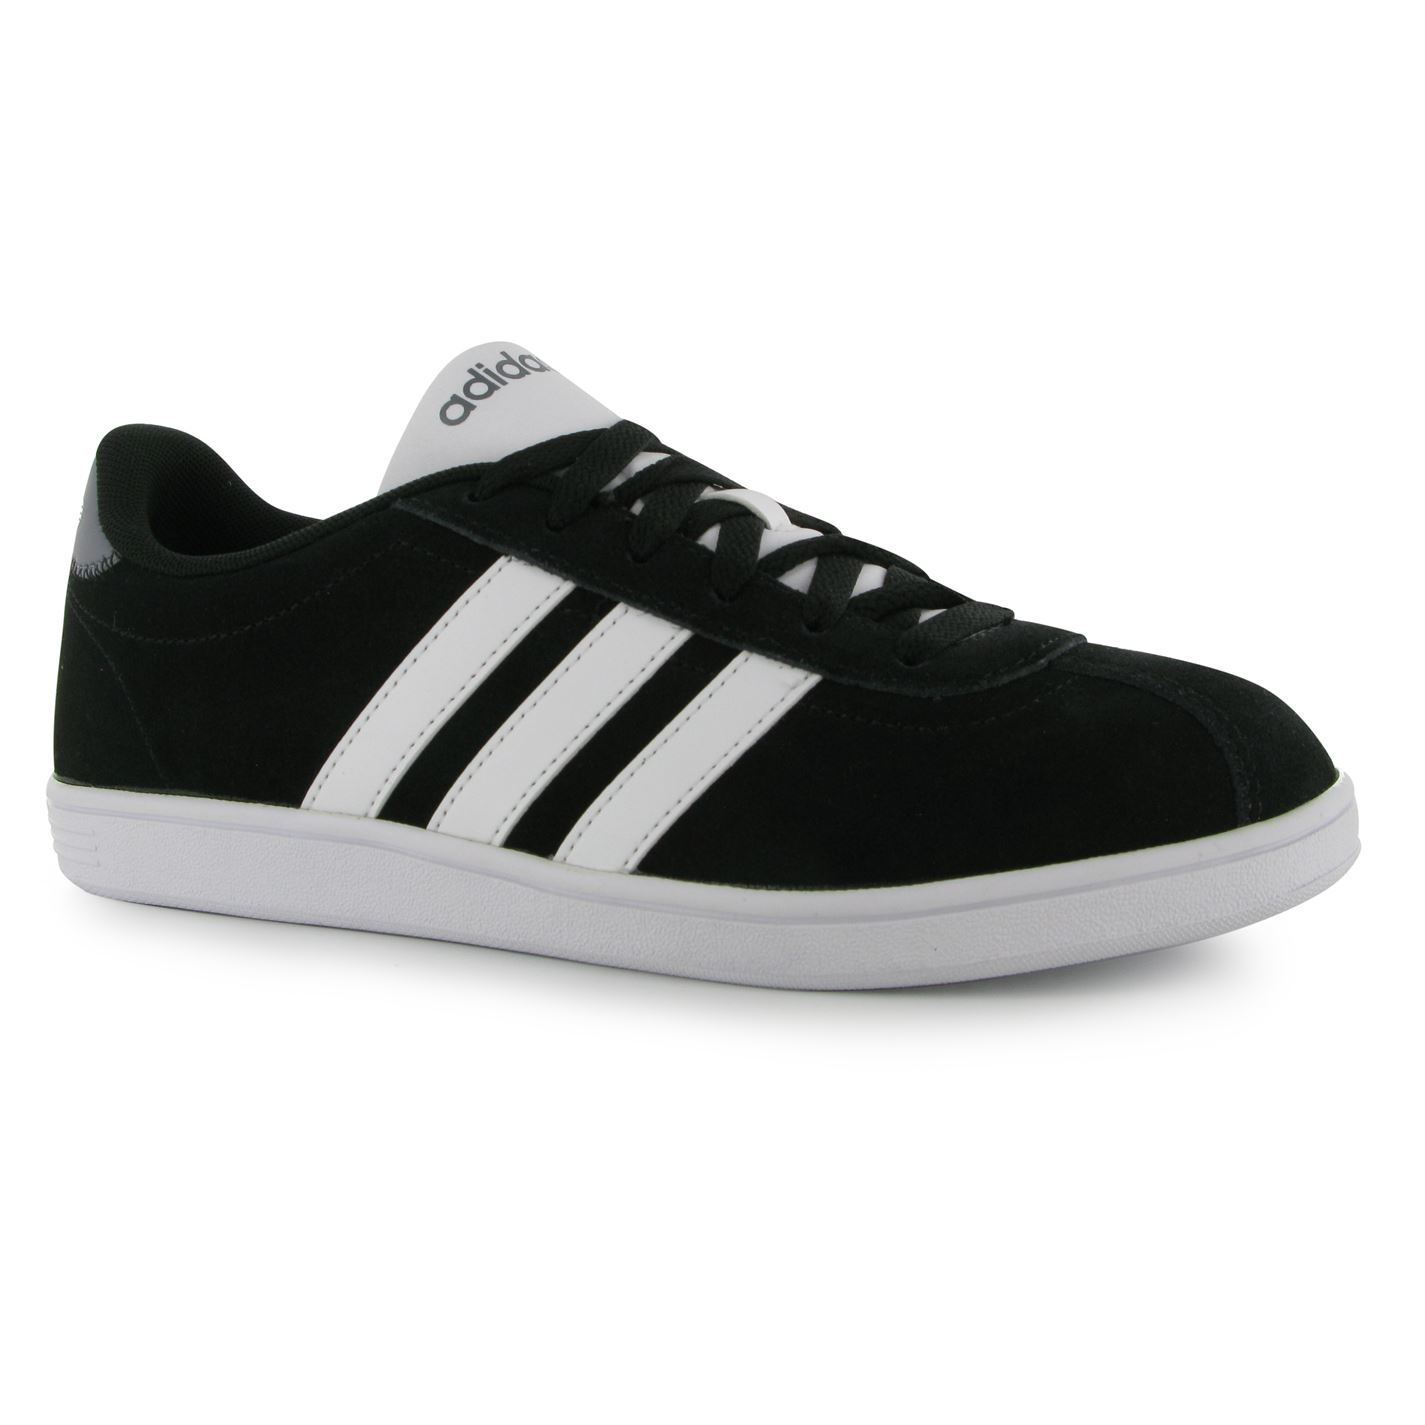 adidas vl court suede mens shoes trainers sneakers sports footwear black white ebay. Black Bedroom Furniture Sets. Home Design Ideas